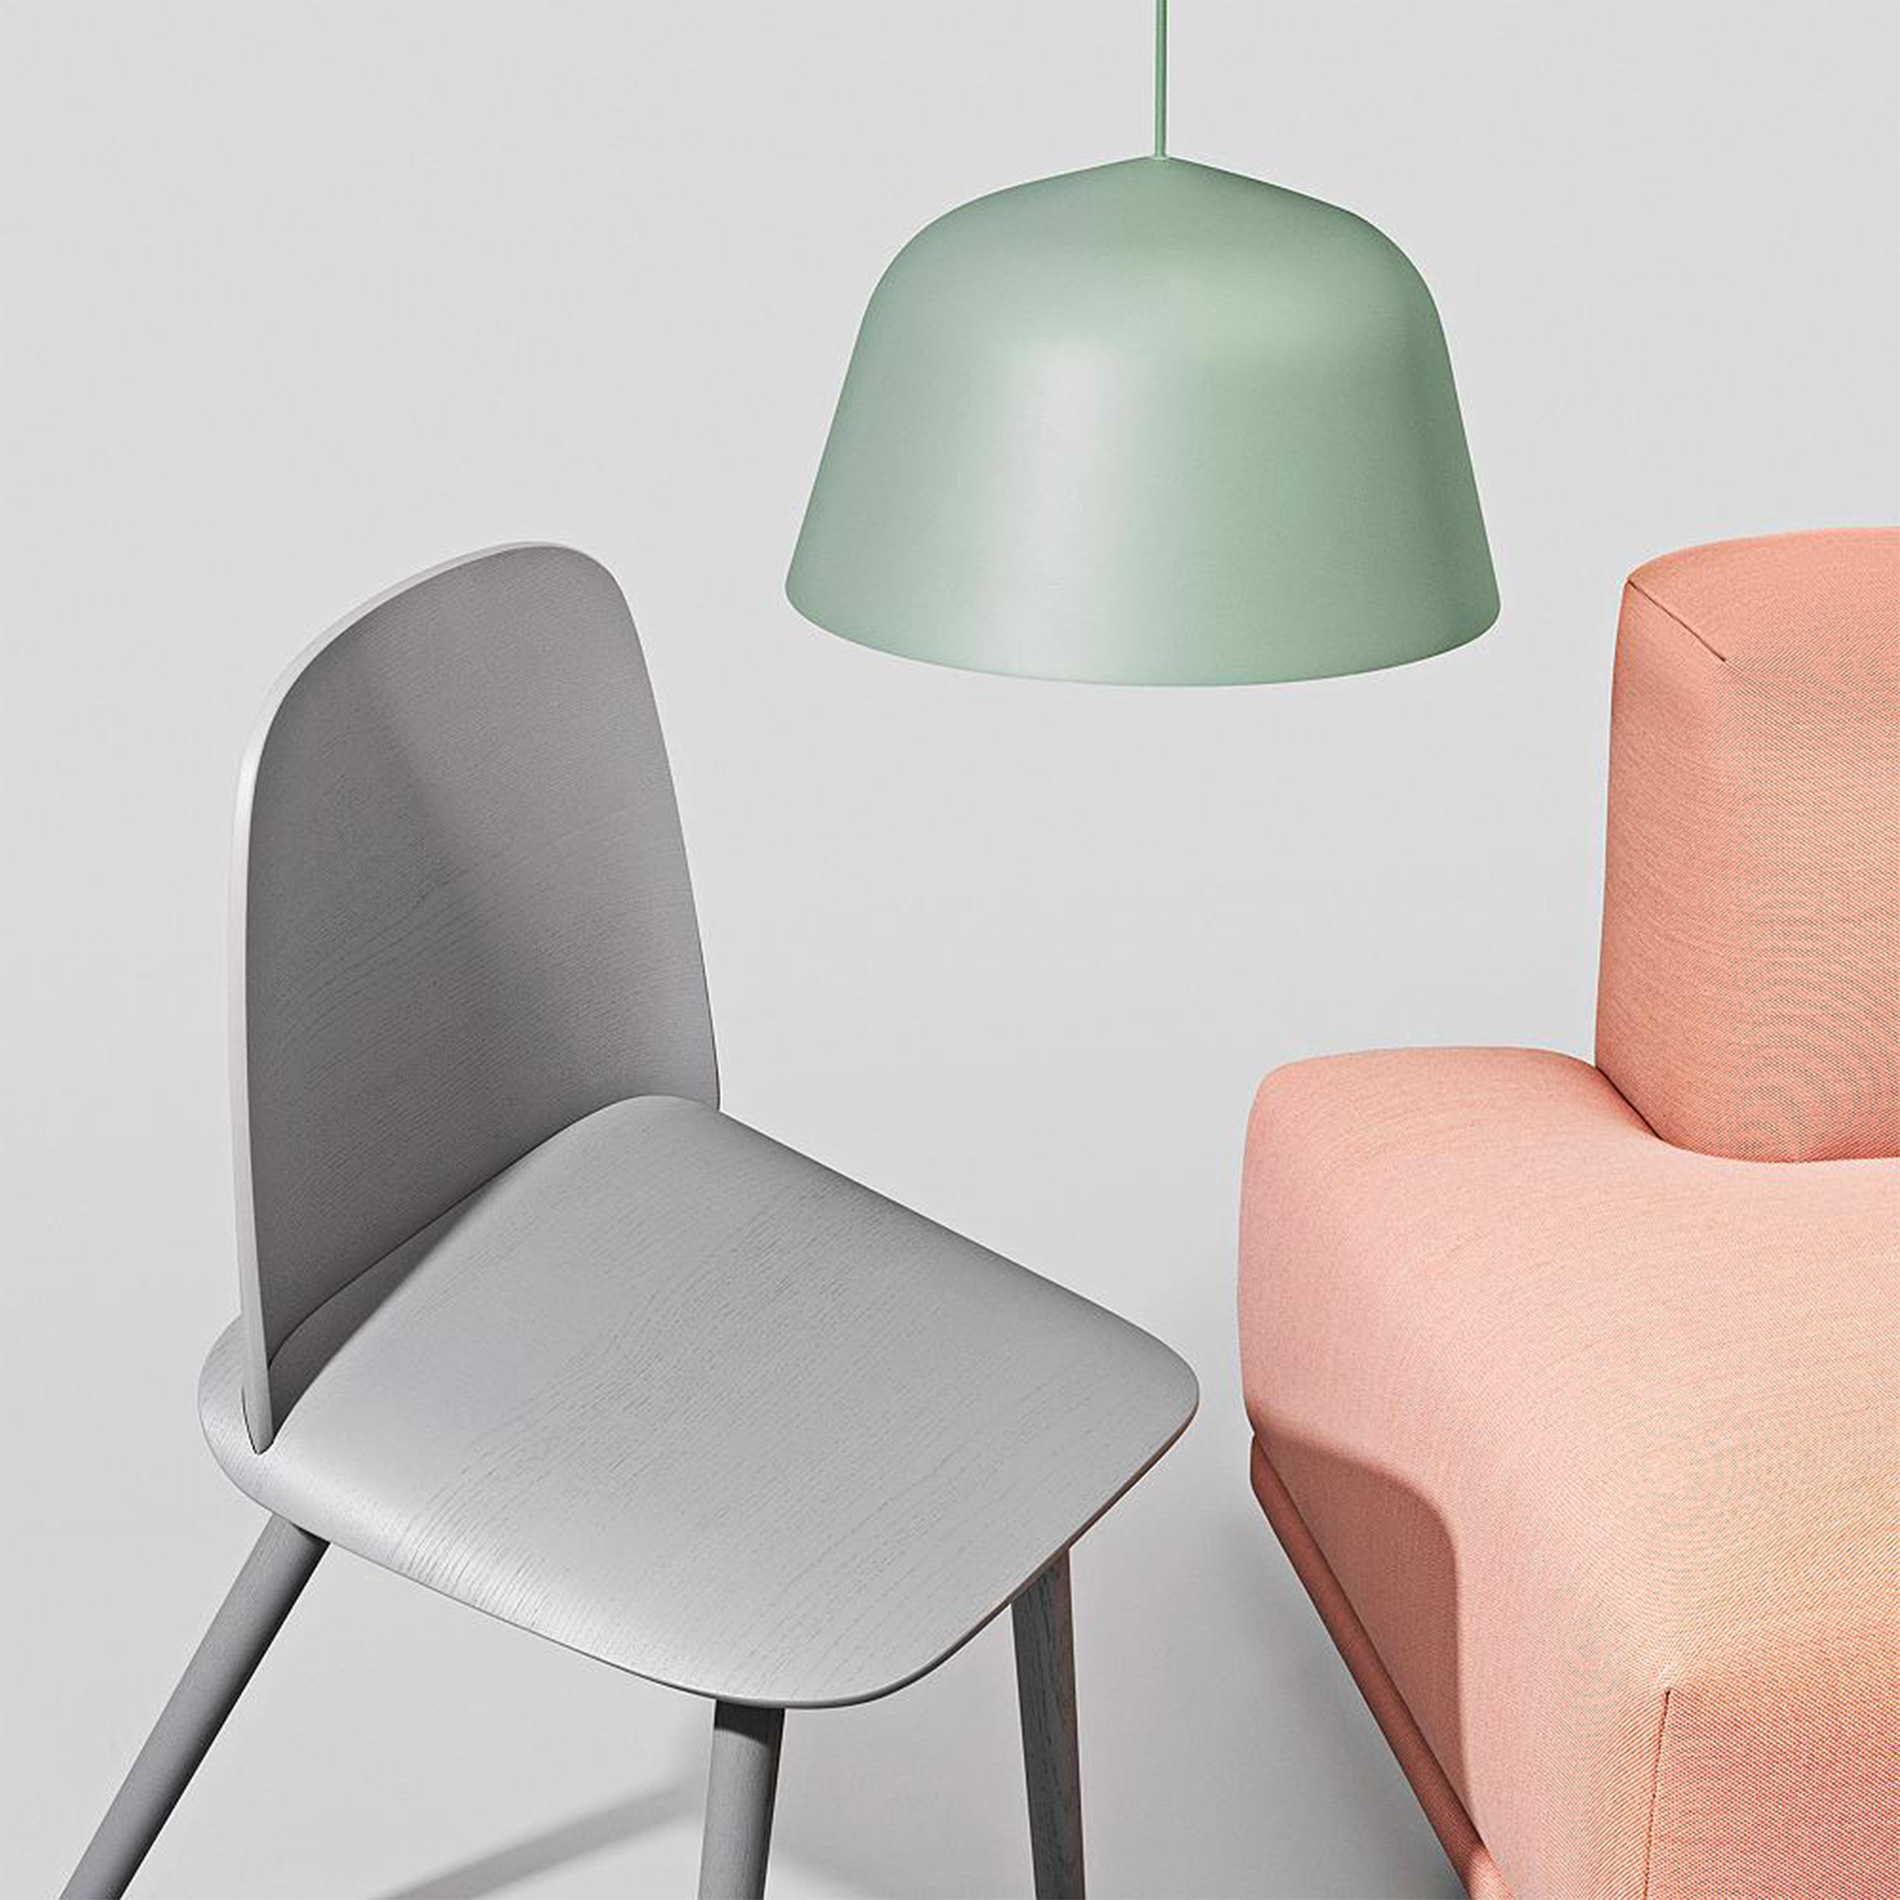 Ambit Pendant and Nerd Chair by Muuto